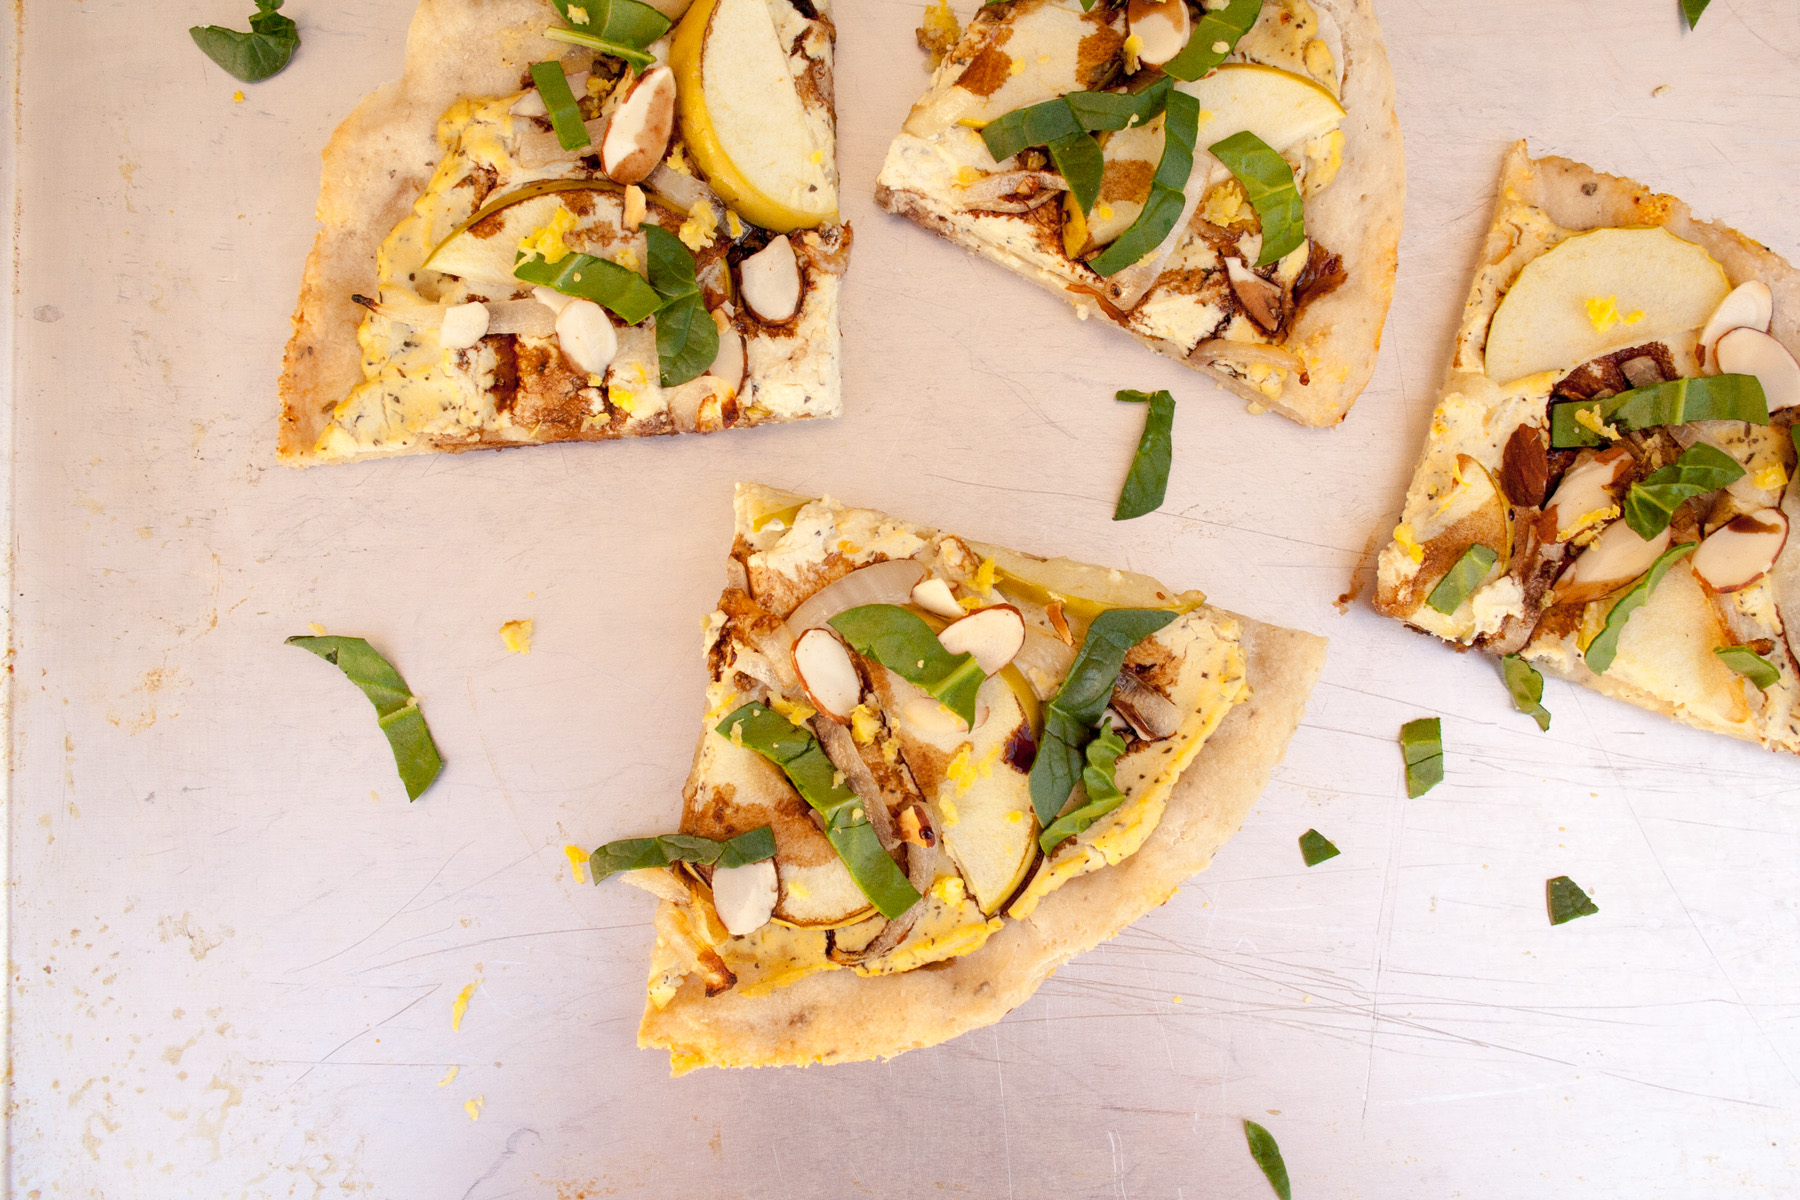 Apple and Tofu Ricotta Pizza